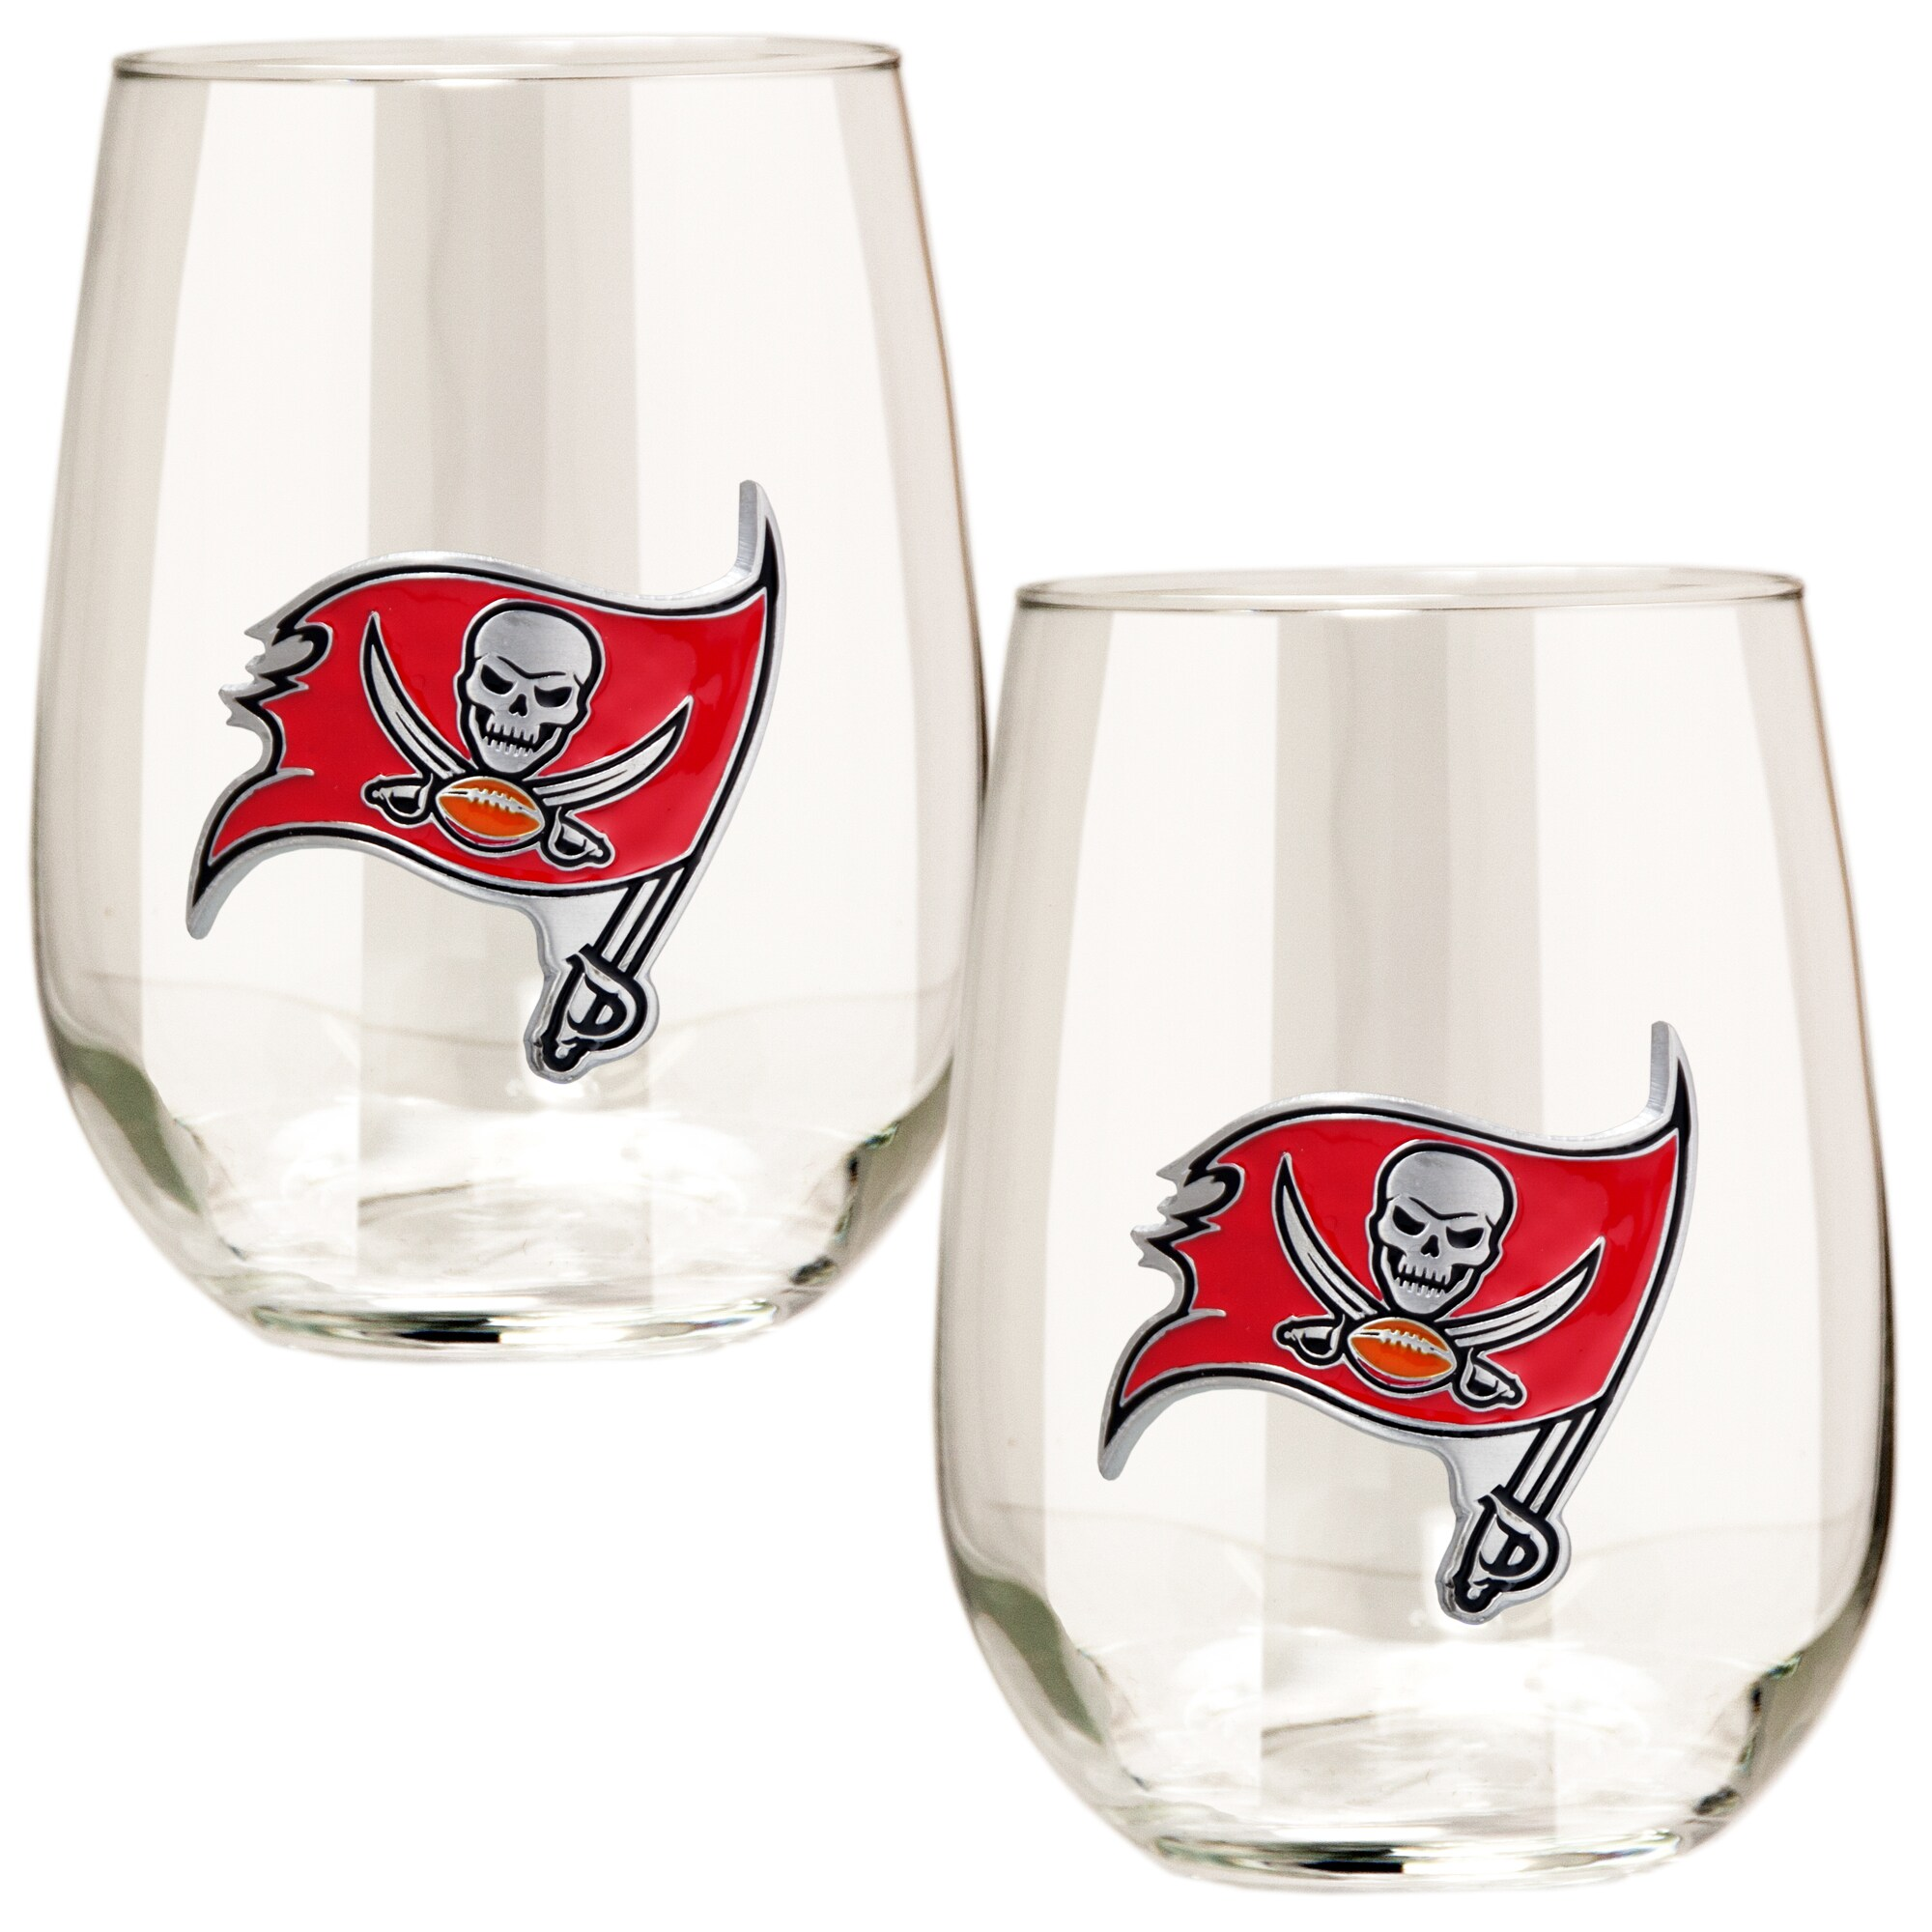 Tampa Bay Buccaneers 15oz. Stemless Wine Glass Set